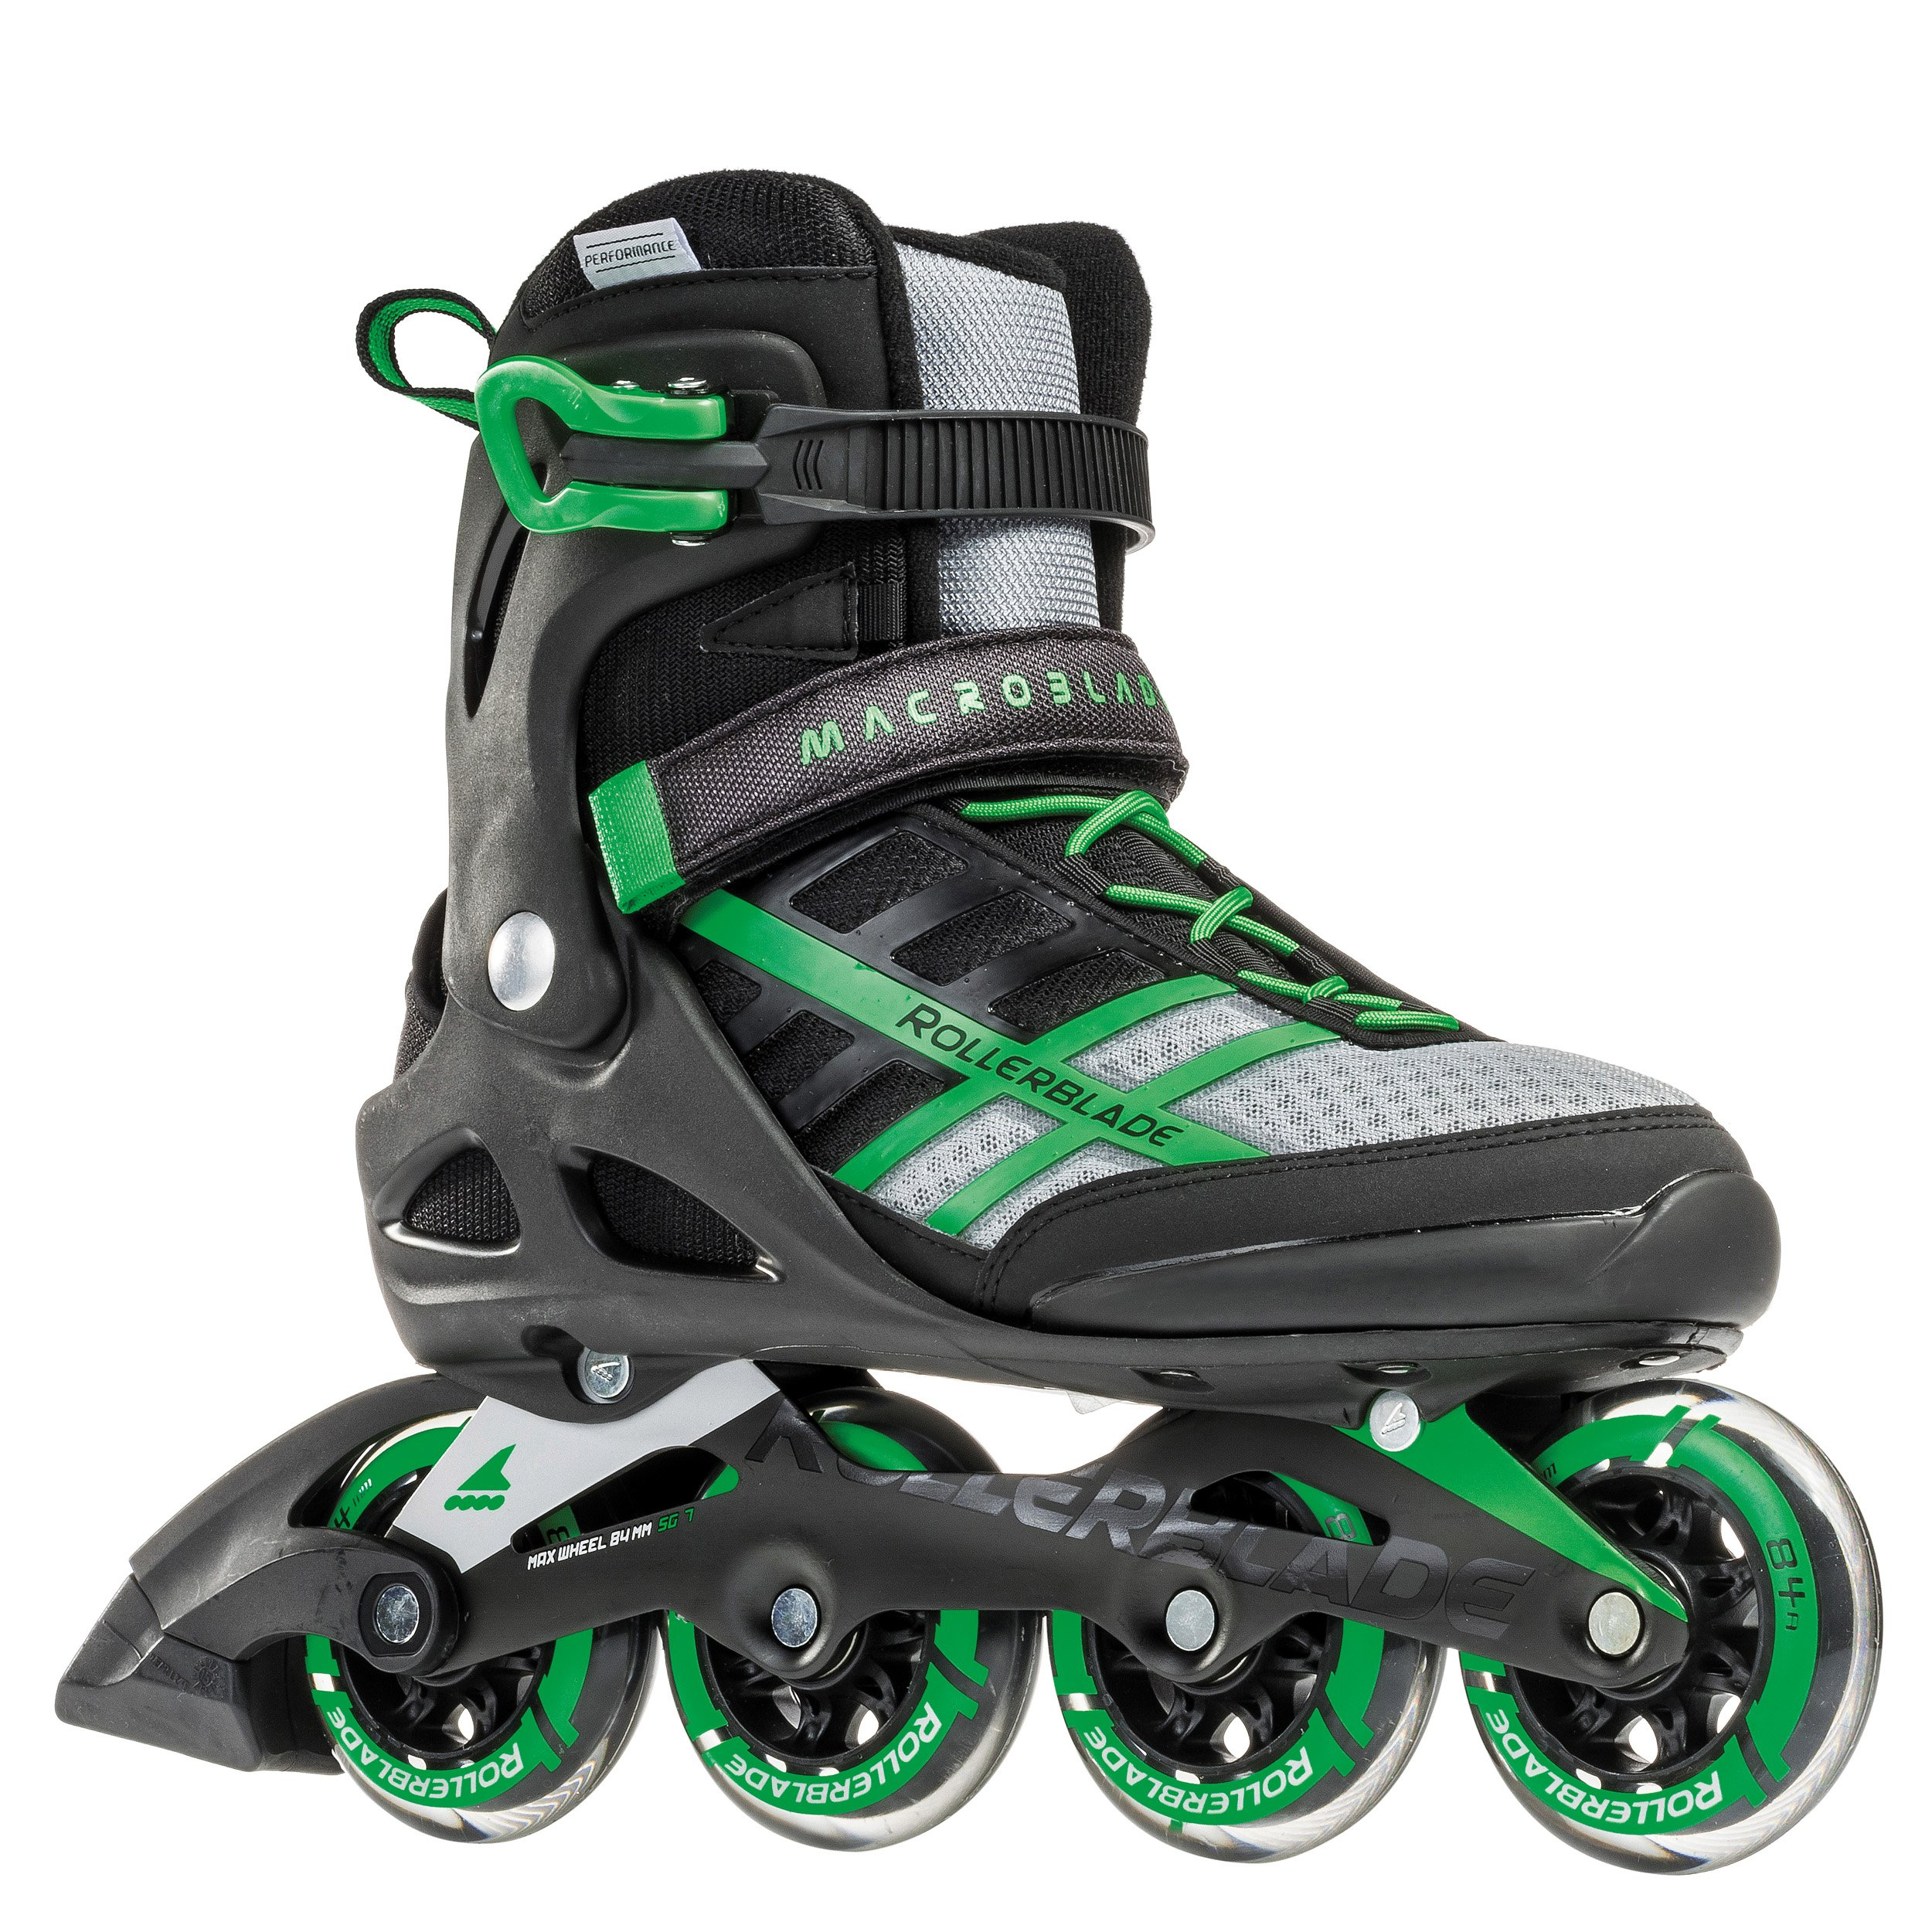 Rollerblade Rollerblade Macroblade 84 Mens Adult Fitness Inline Skate - Black/Green - 84 mm / 84A Wheels with SG7 Bearings - Performance Skates - US size 10, Black/Green, Size 10